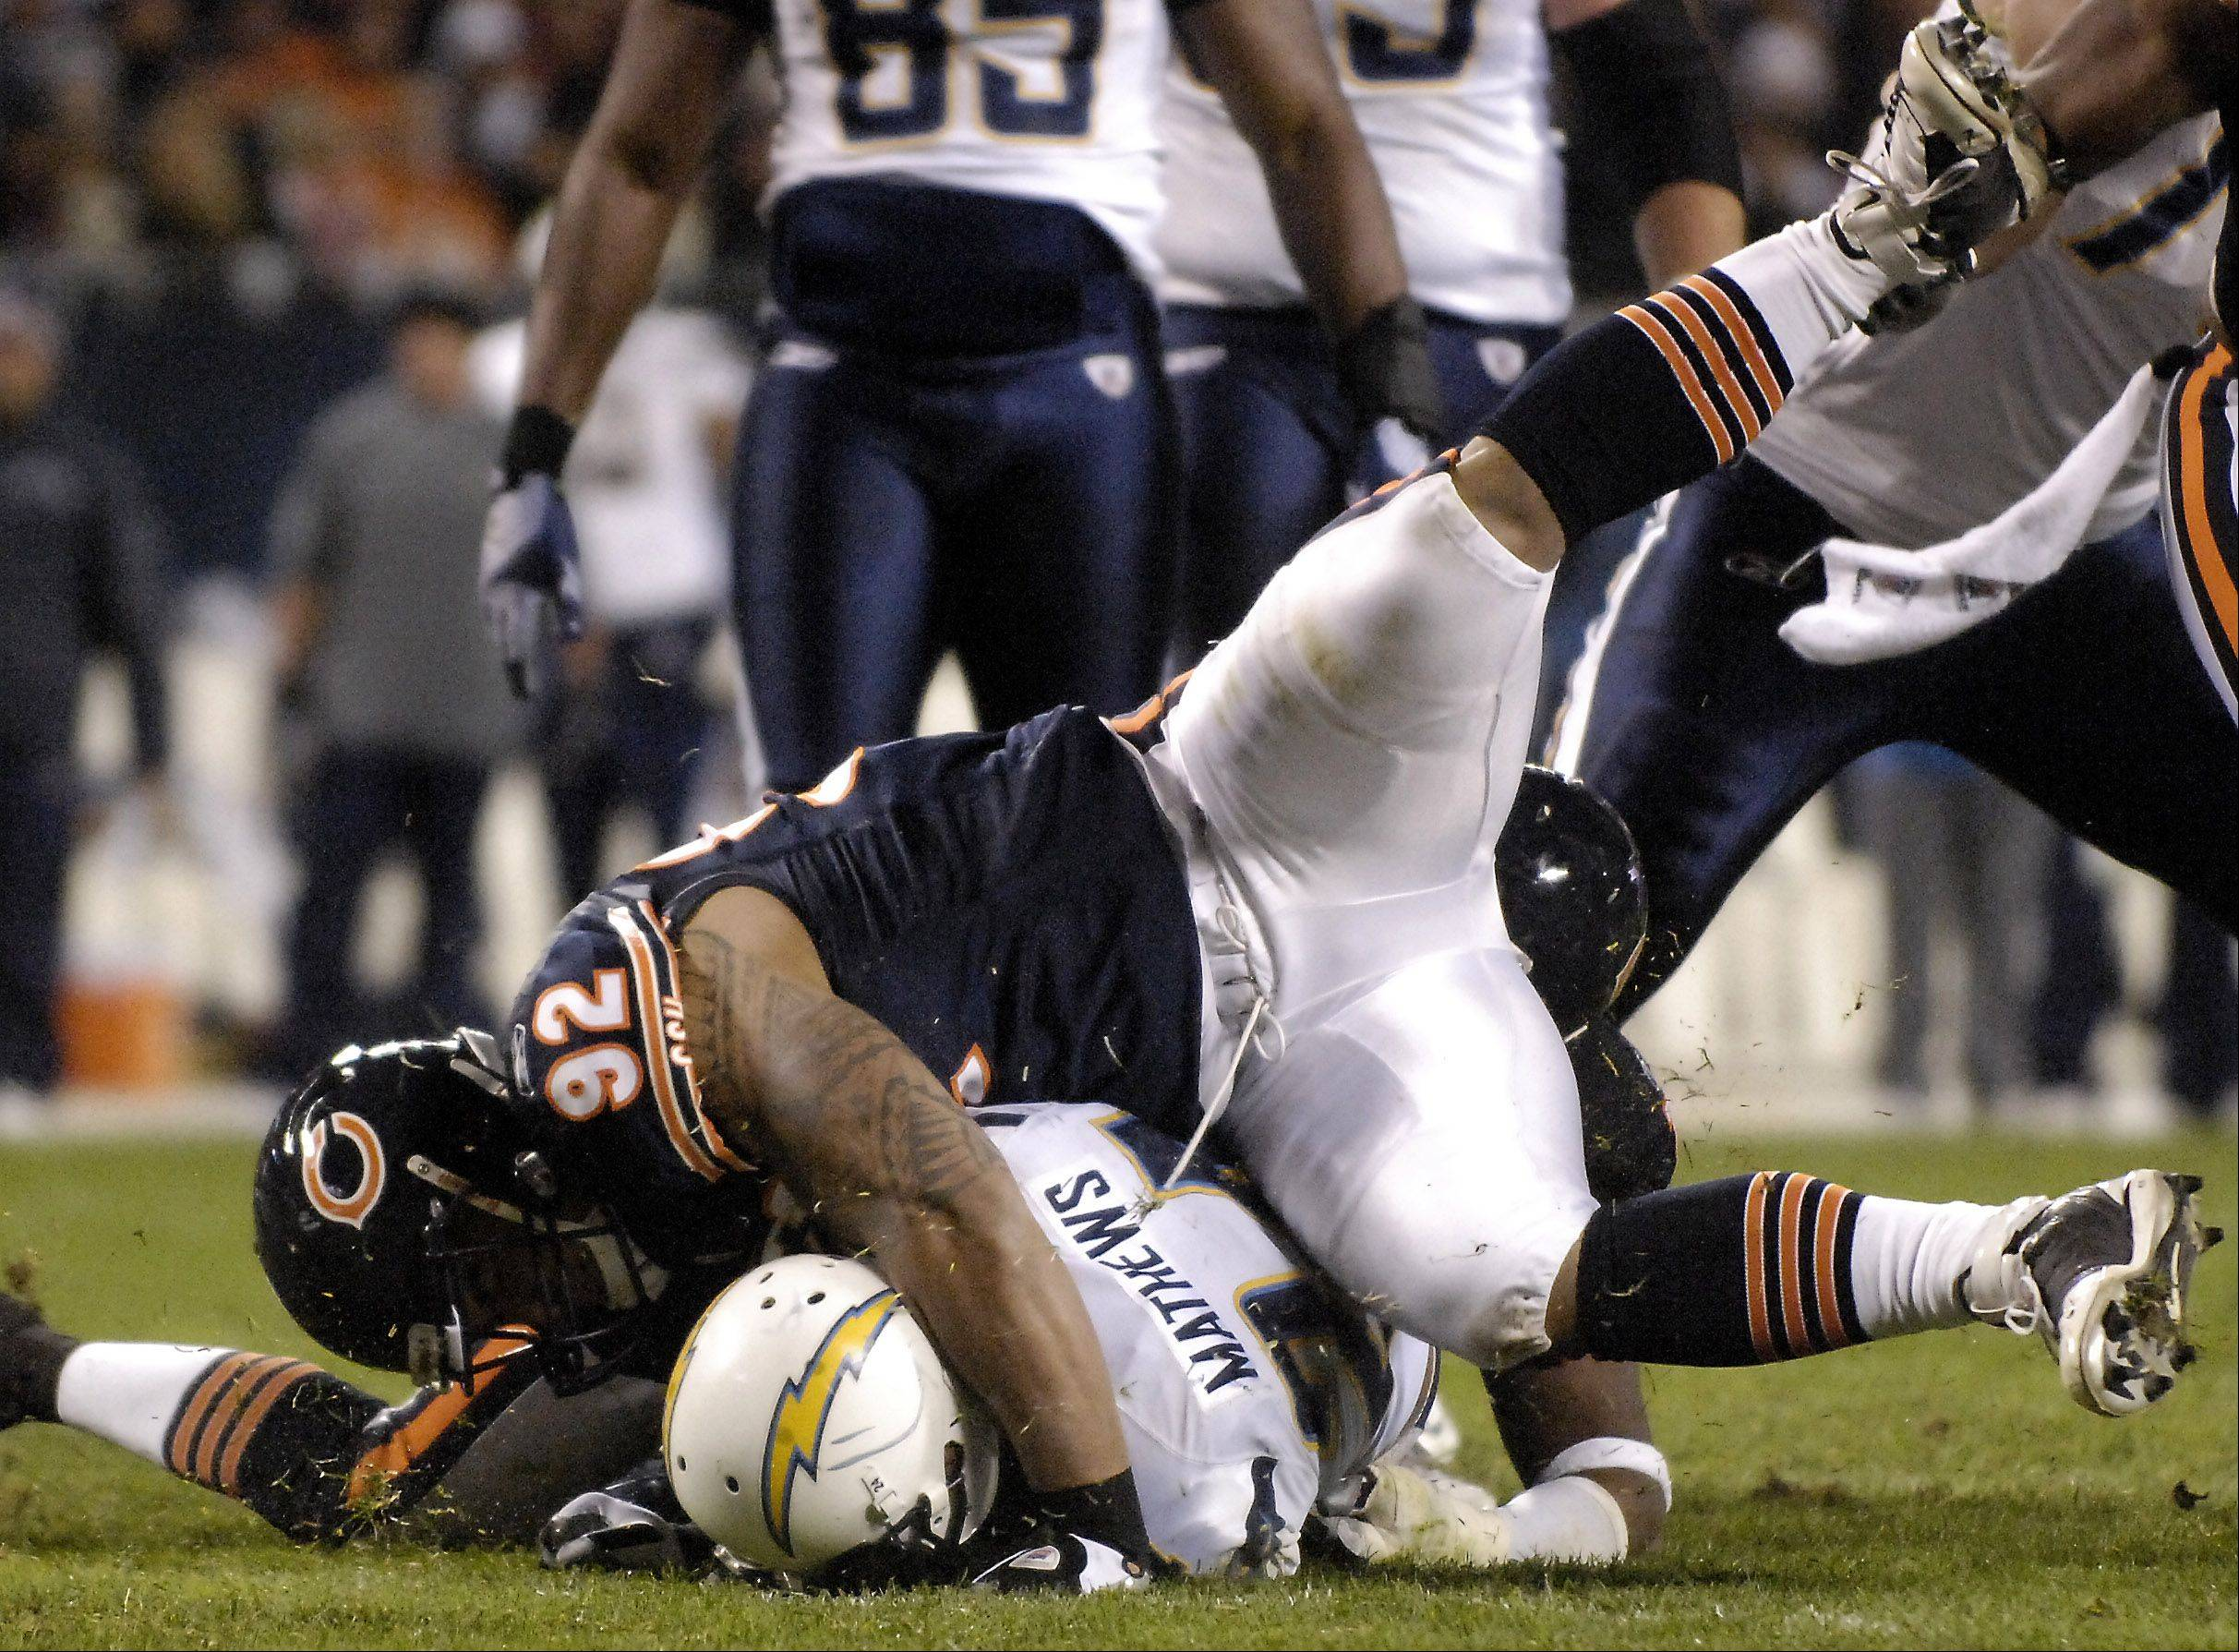 Rick West/rwest@dailyherald.com ¬ Chicago Bears defensive tackle Stephen Paea (92) drives San Diego Chargers running back Ryan Mathews (24) into the ground for no gain during Sunday's game at Soldier Field in Chicago. ¬